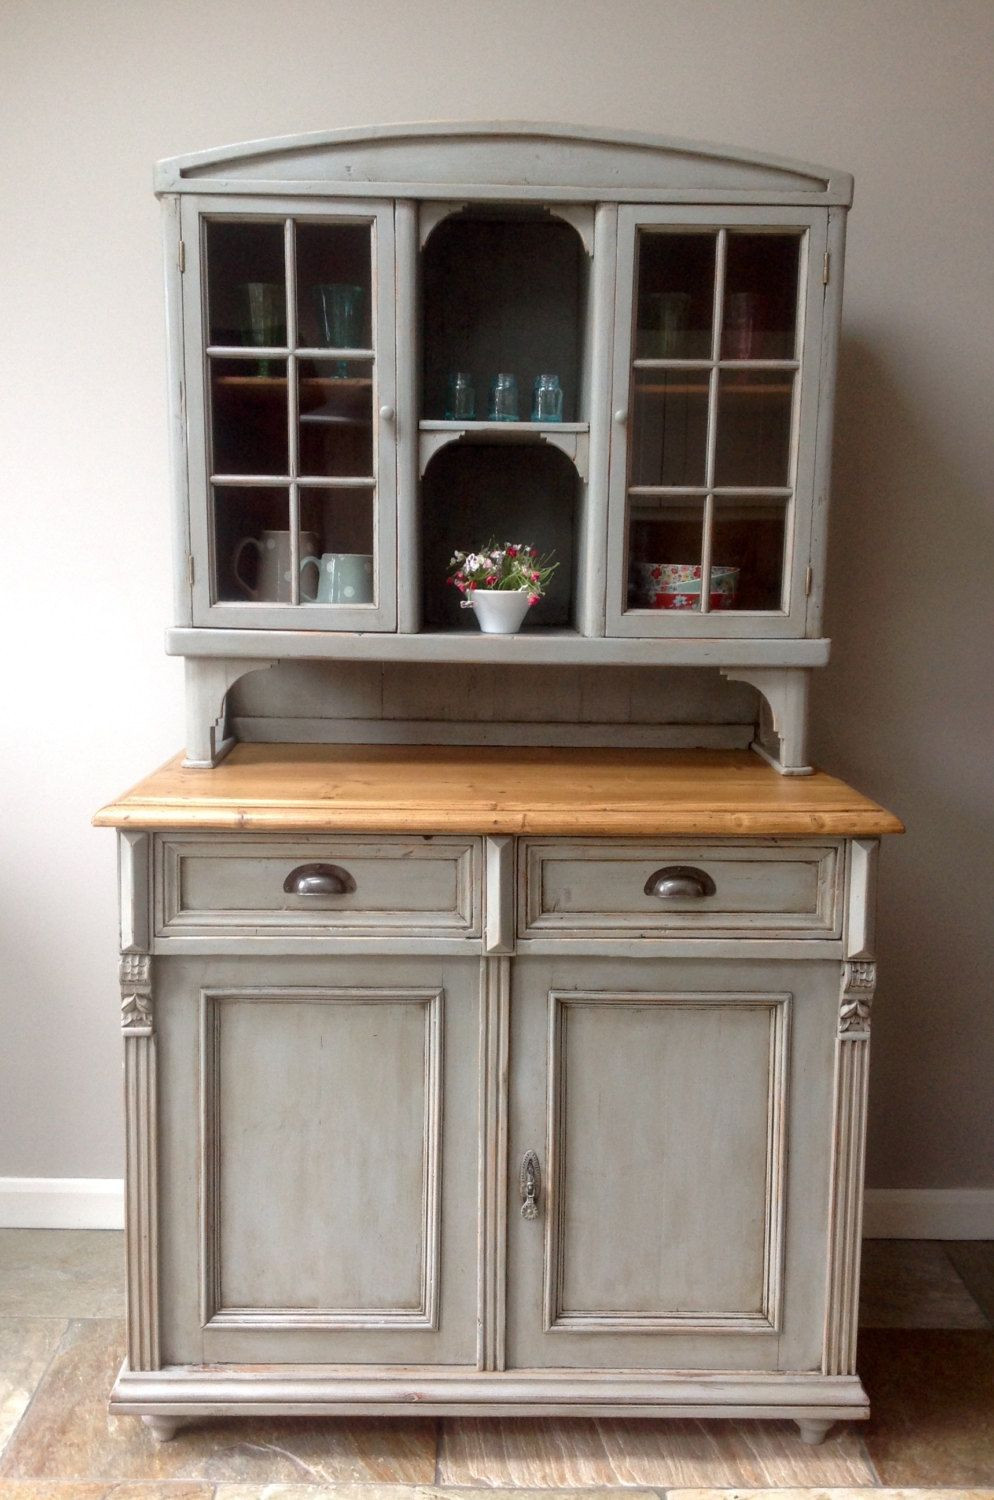 Victorian Kitchen Furniture Antique Victorian Country French Rustic Painted Pine Grey Glazed